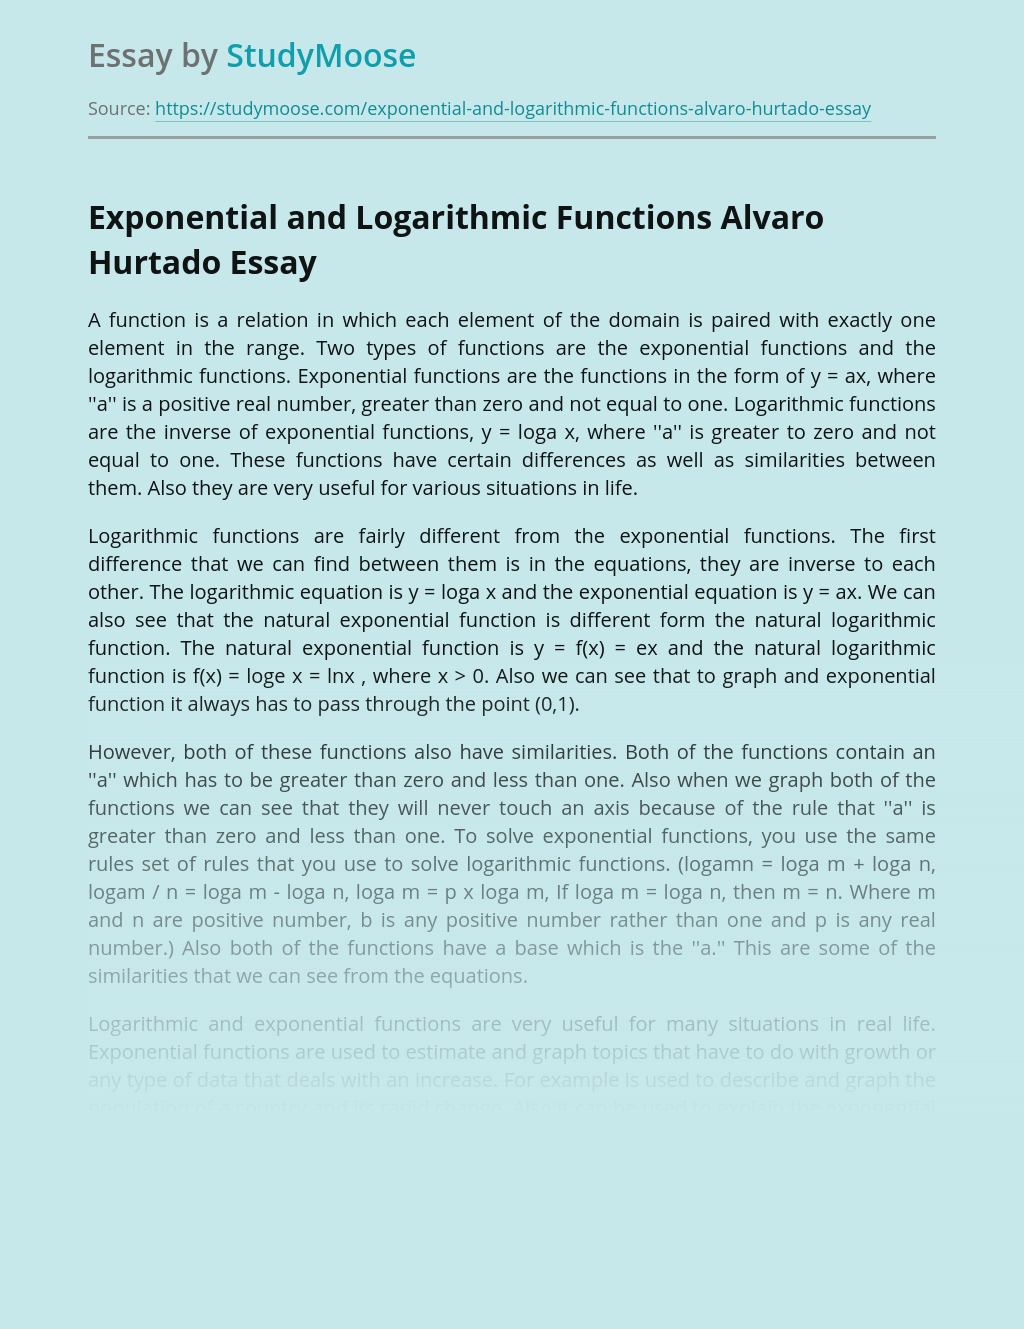 Exponential and Logarithmic Functions Alvaro Hurtado